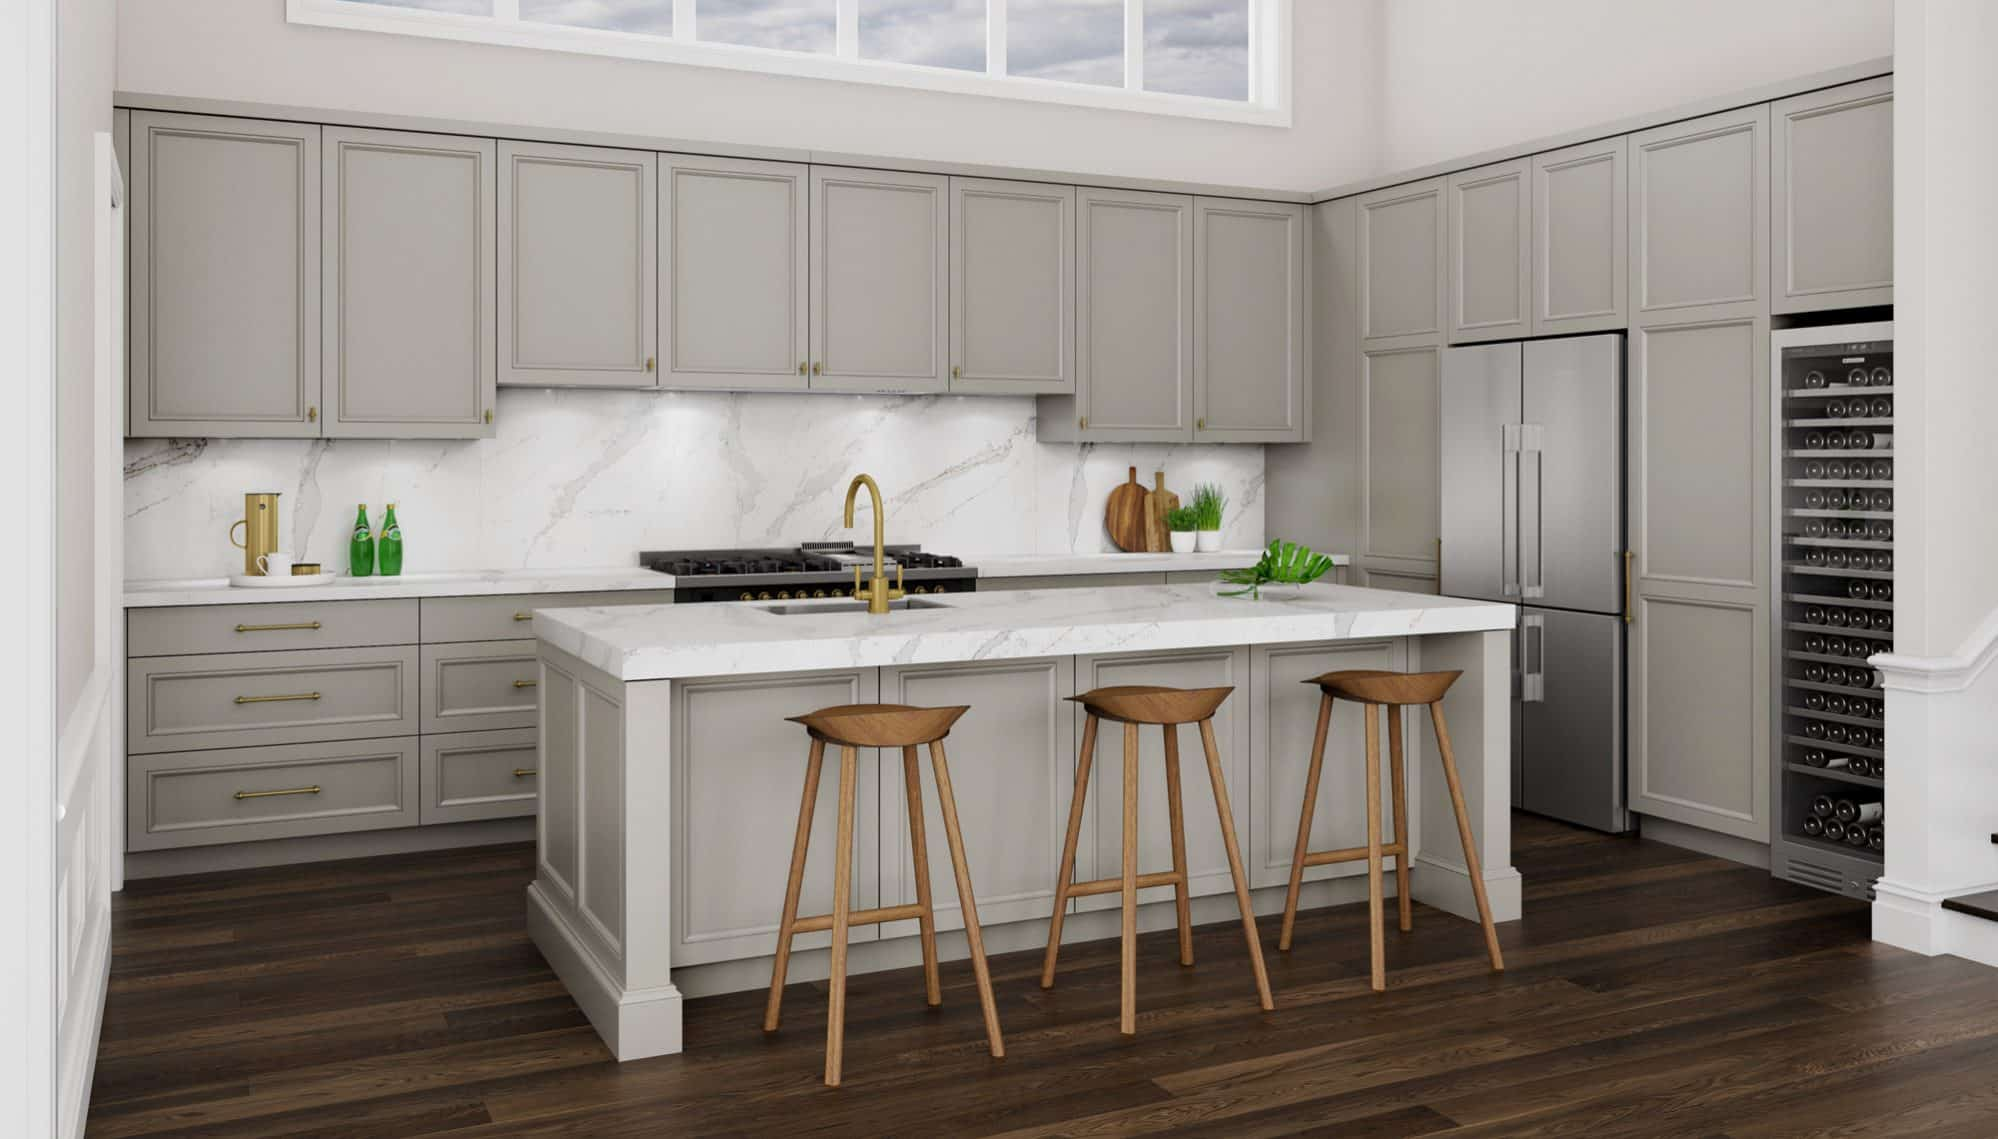 3D Illustration of the Northmead Kitchen Project